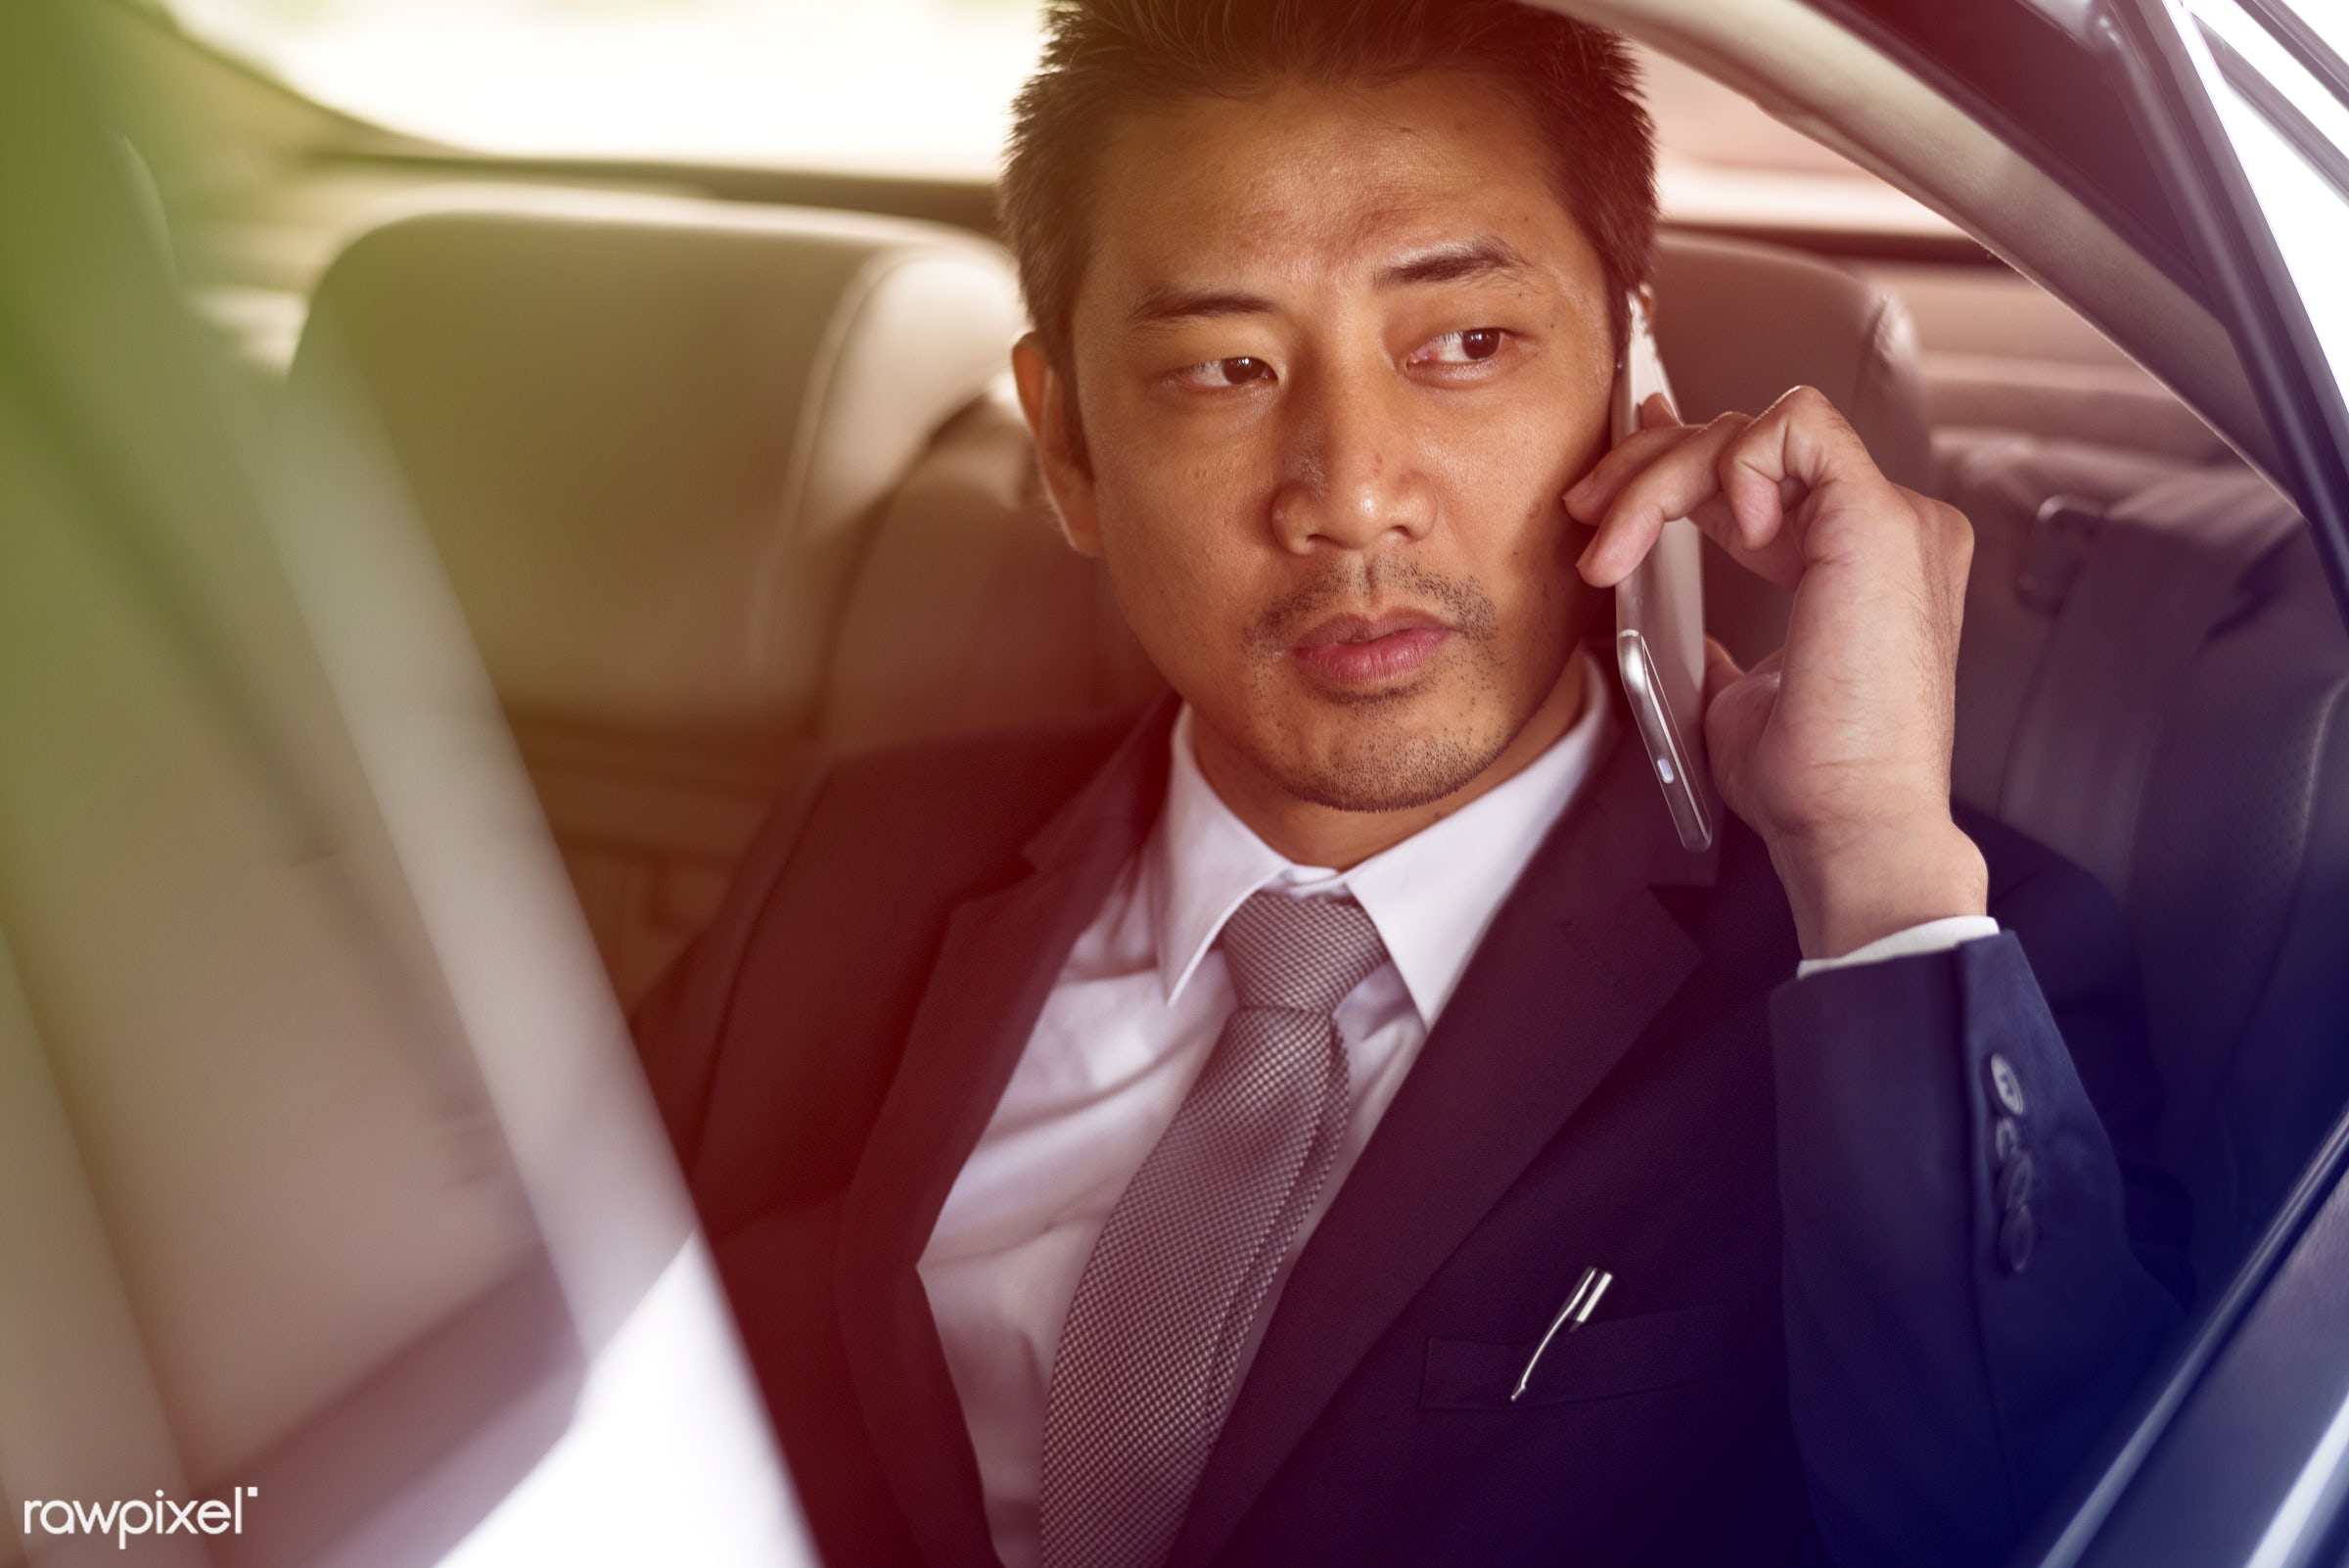 expression, using, person, phone, white collar worker, tie, busy, transportation, travel, seat, cellphone, smart phone,...